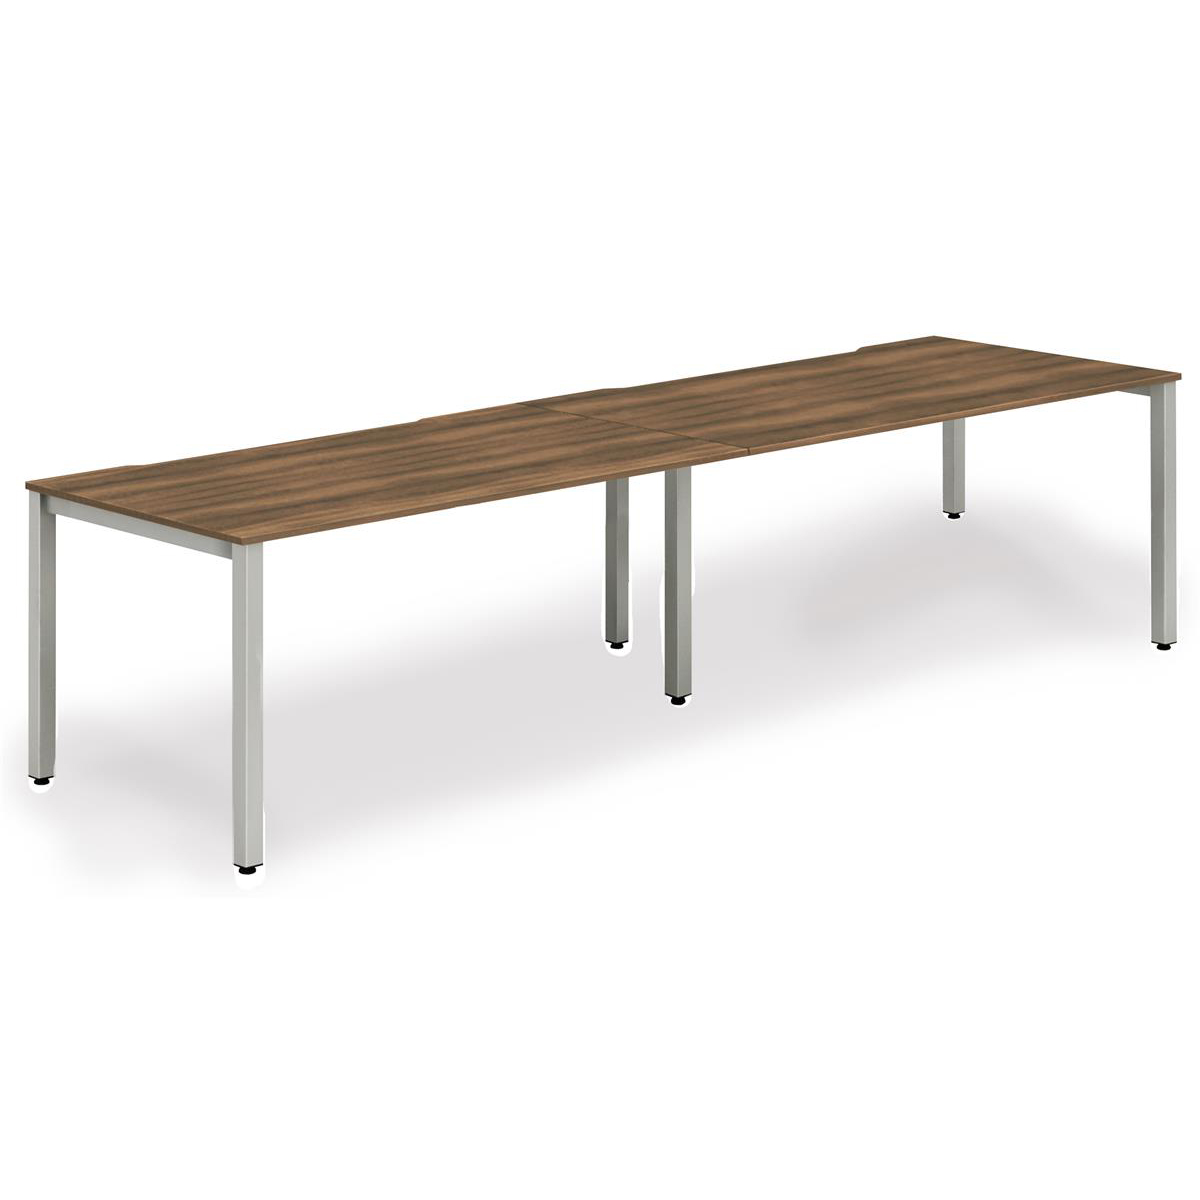 Trexus Bench Desk 2 Person Side to Side Configuration Silver Leg 3200x800mm Walnut Ref BE369